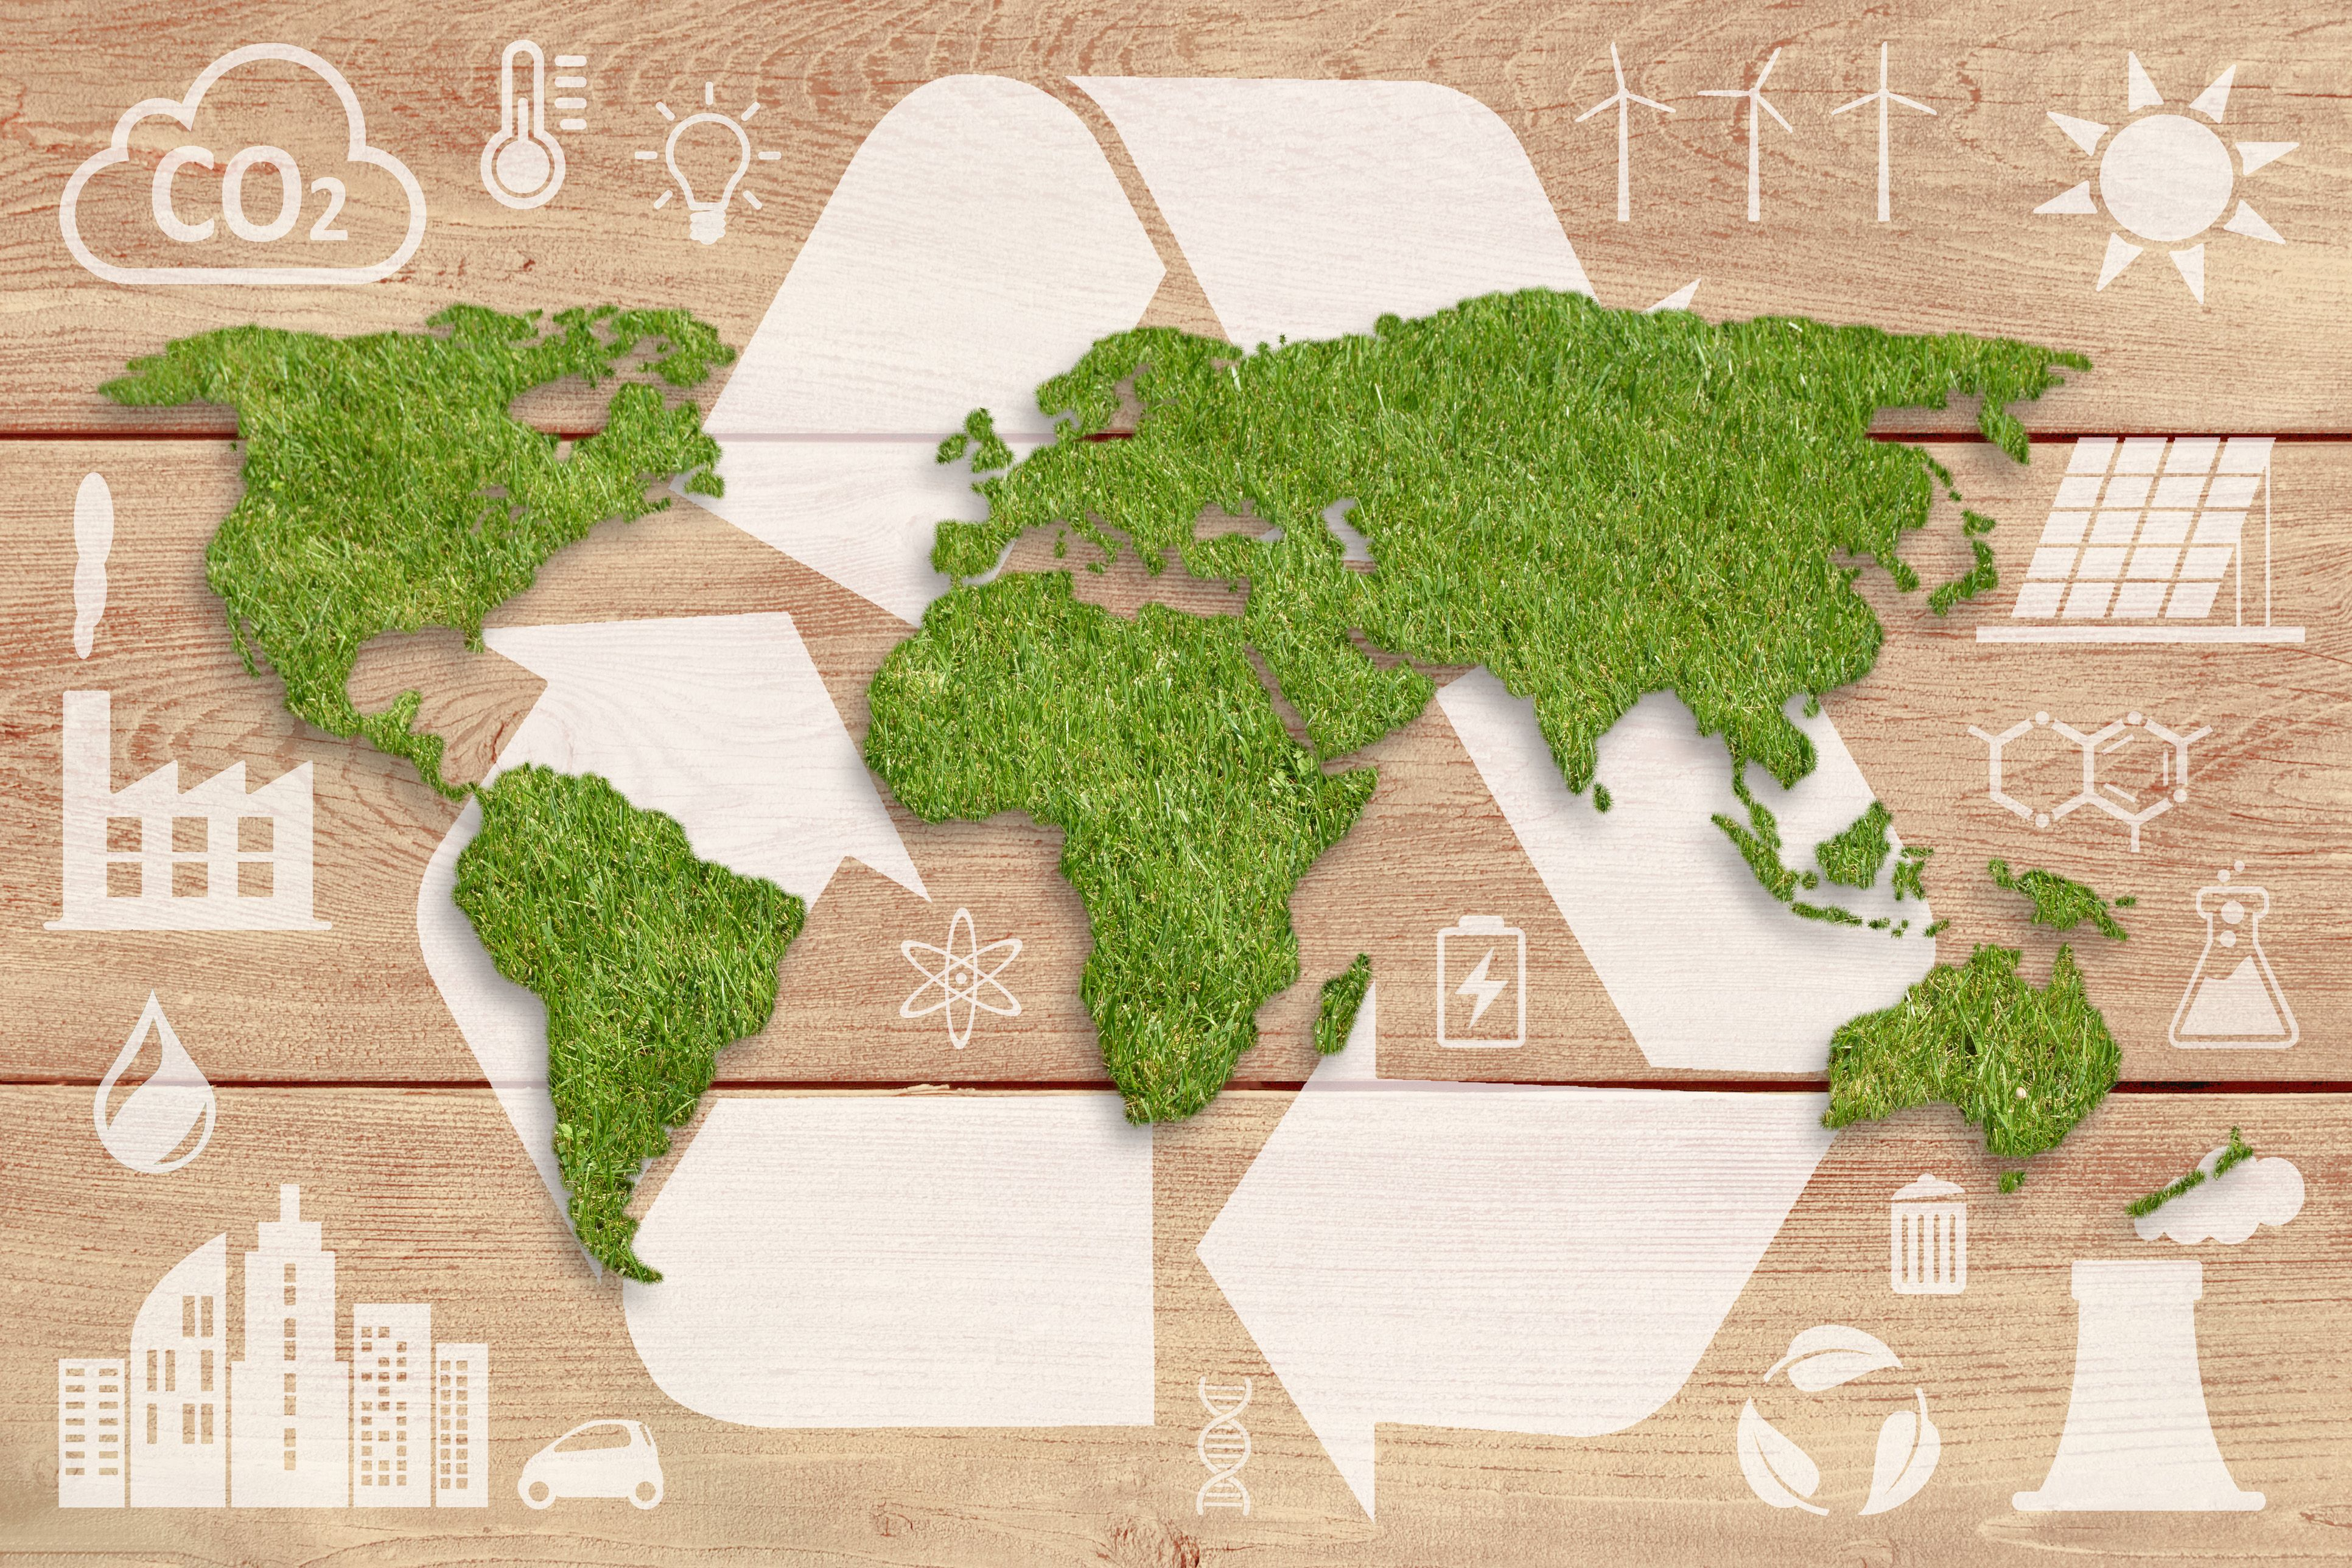 Building Sustainable Industries